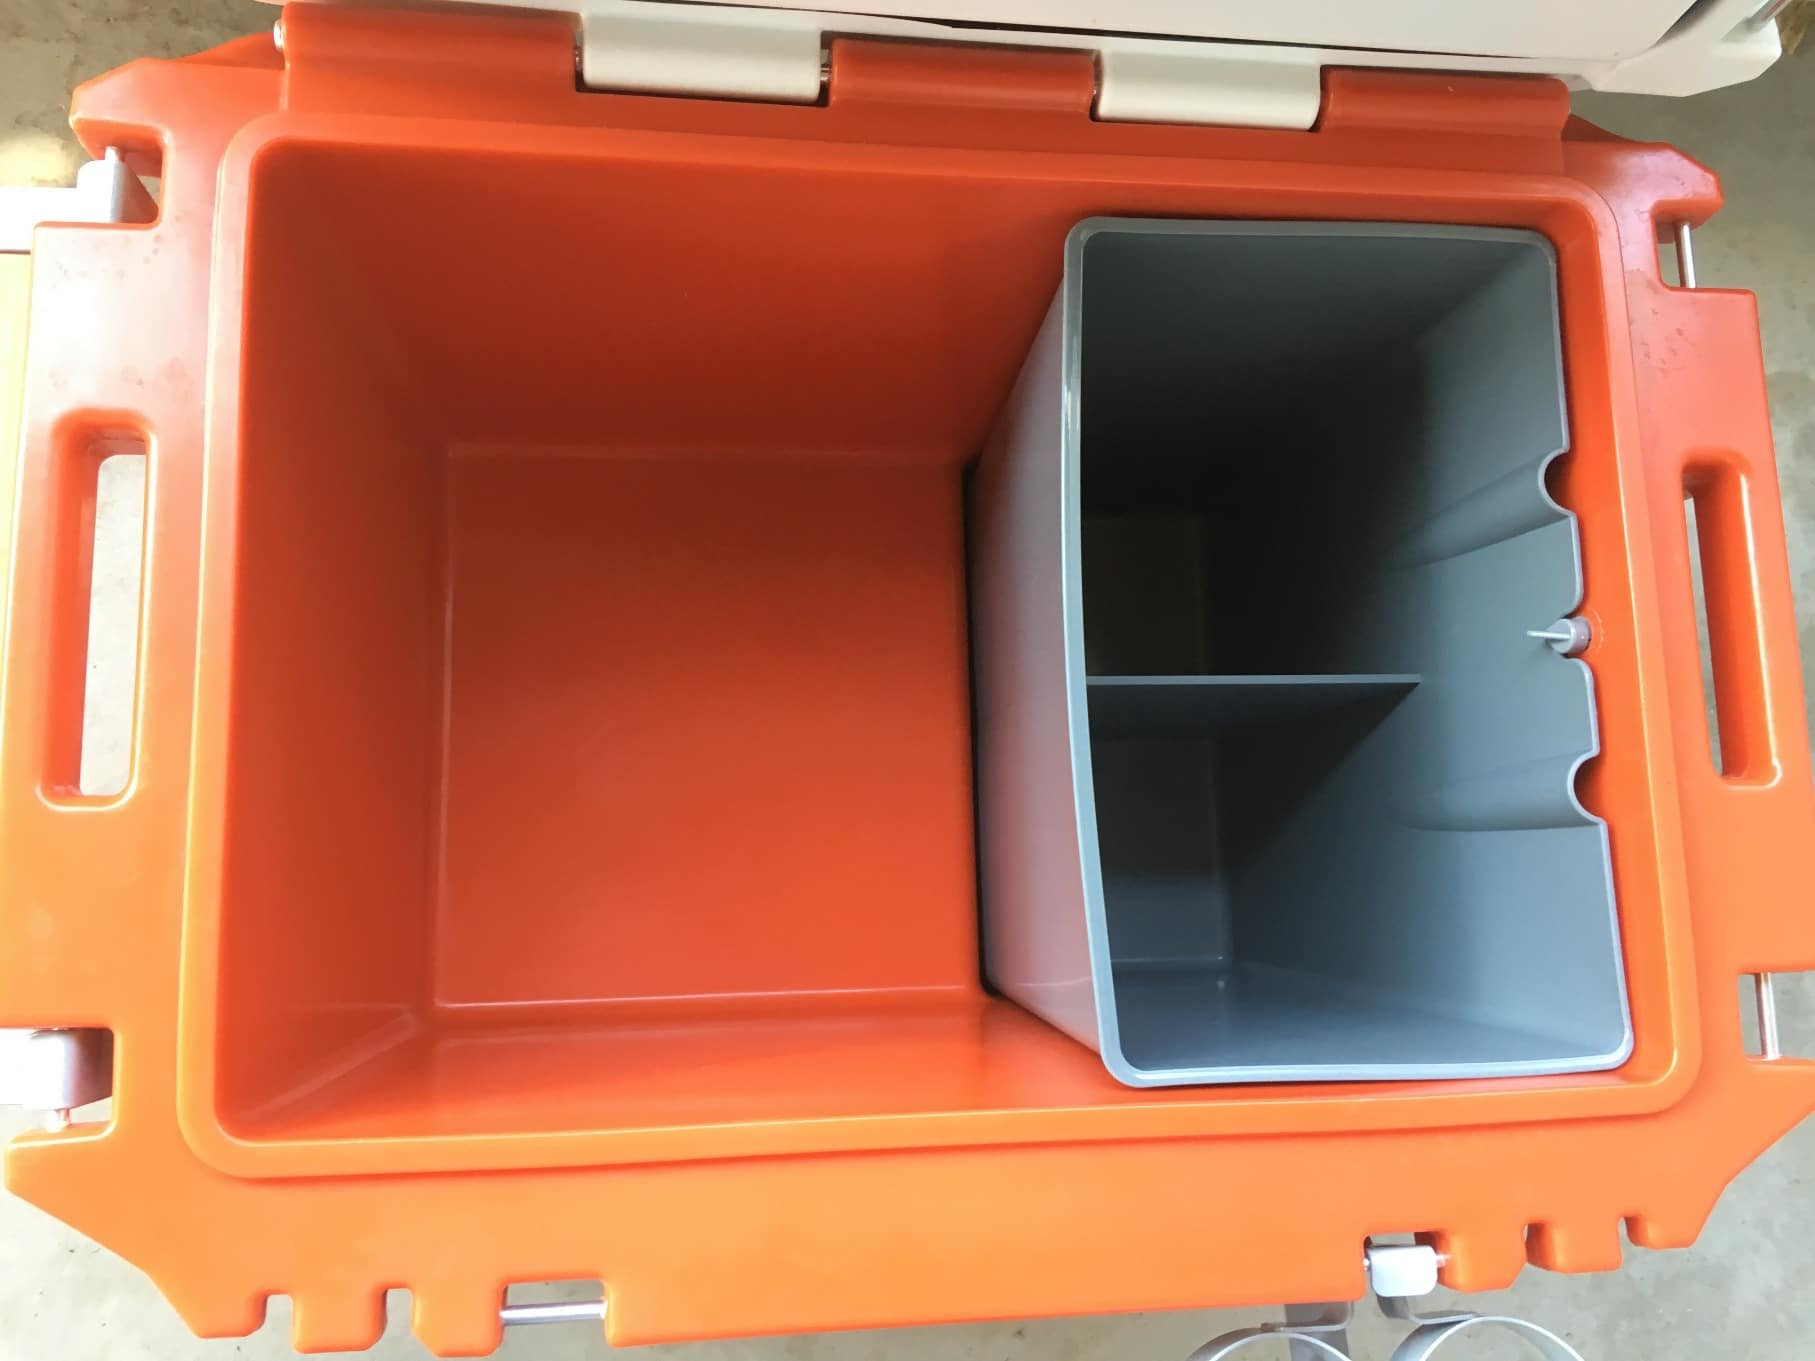 Inside the rollr rovr 60. the retaining clip above the dry bin keeps the bin from floating when the ice begins to melt. try not to lose it.